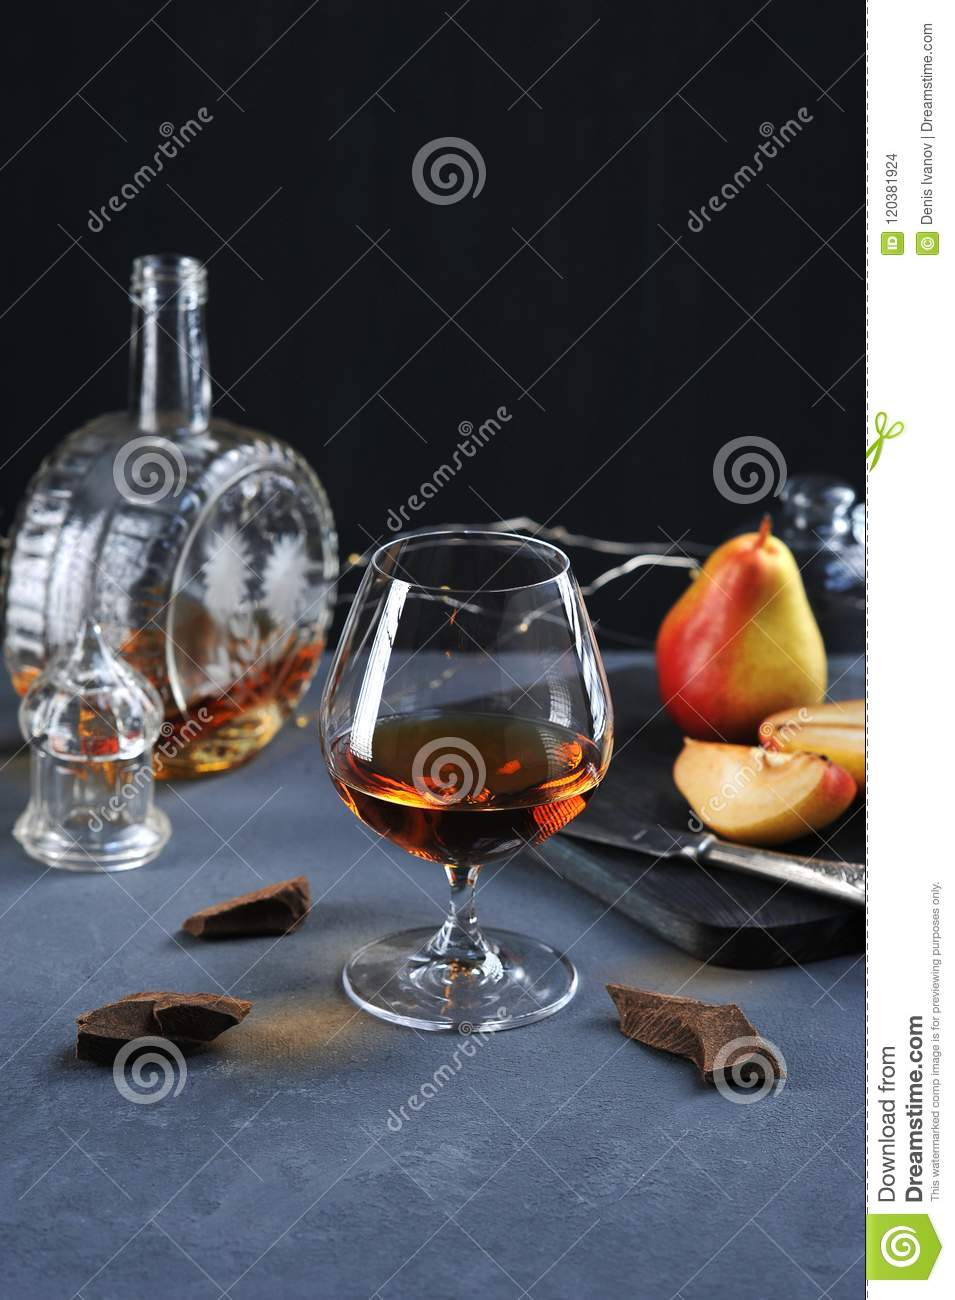 Cognac in a glass with chocolate and pear